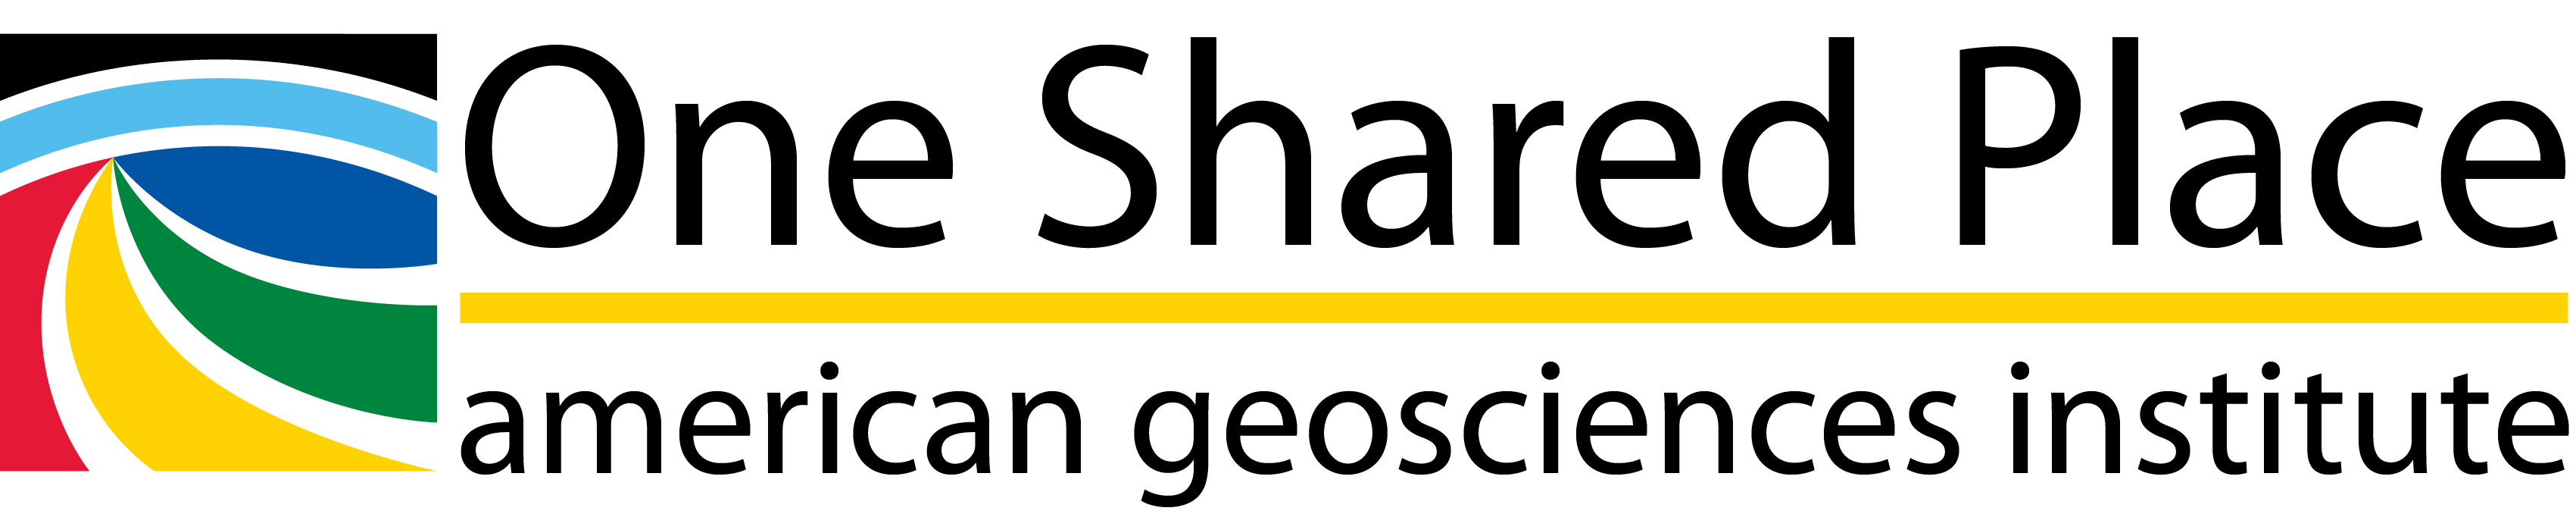 One Shared Place Logo